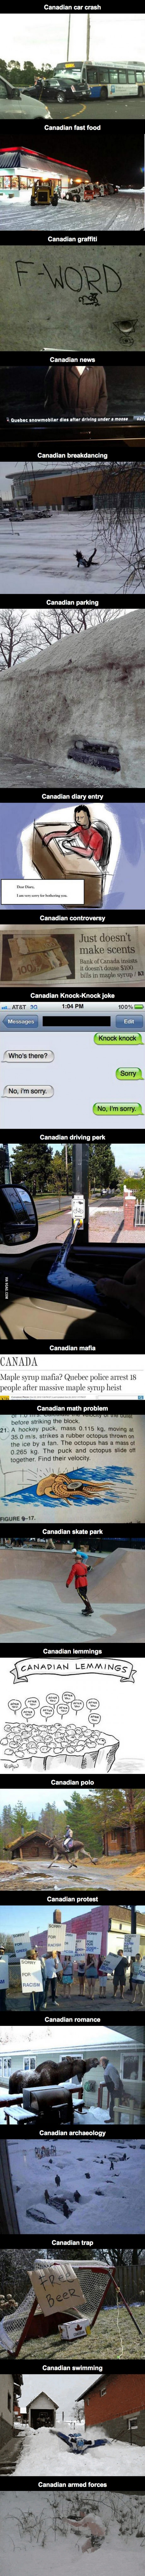 more-facts-about-canada